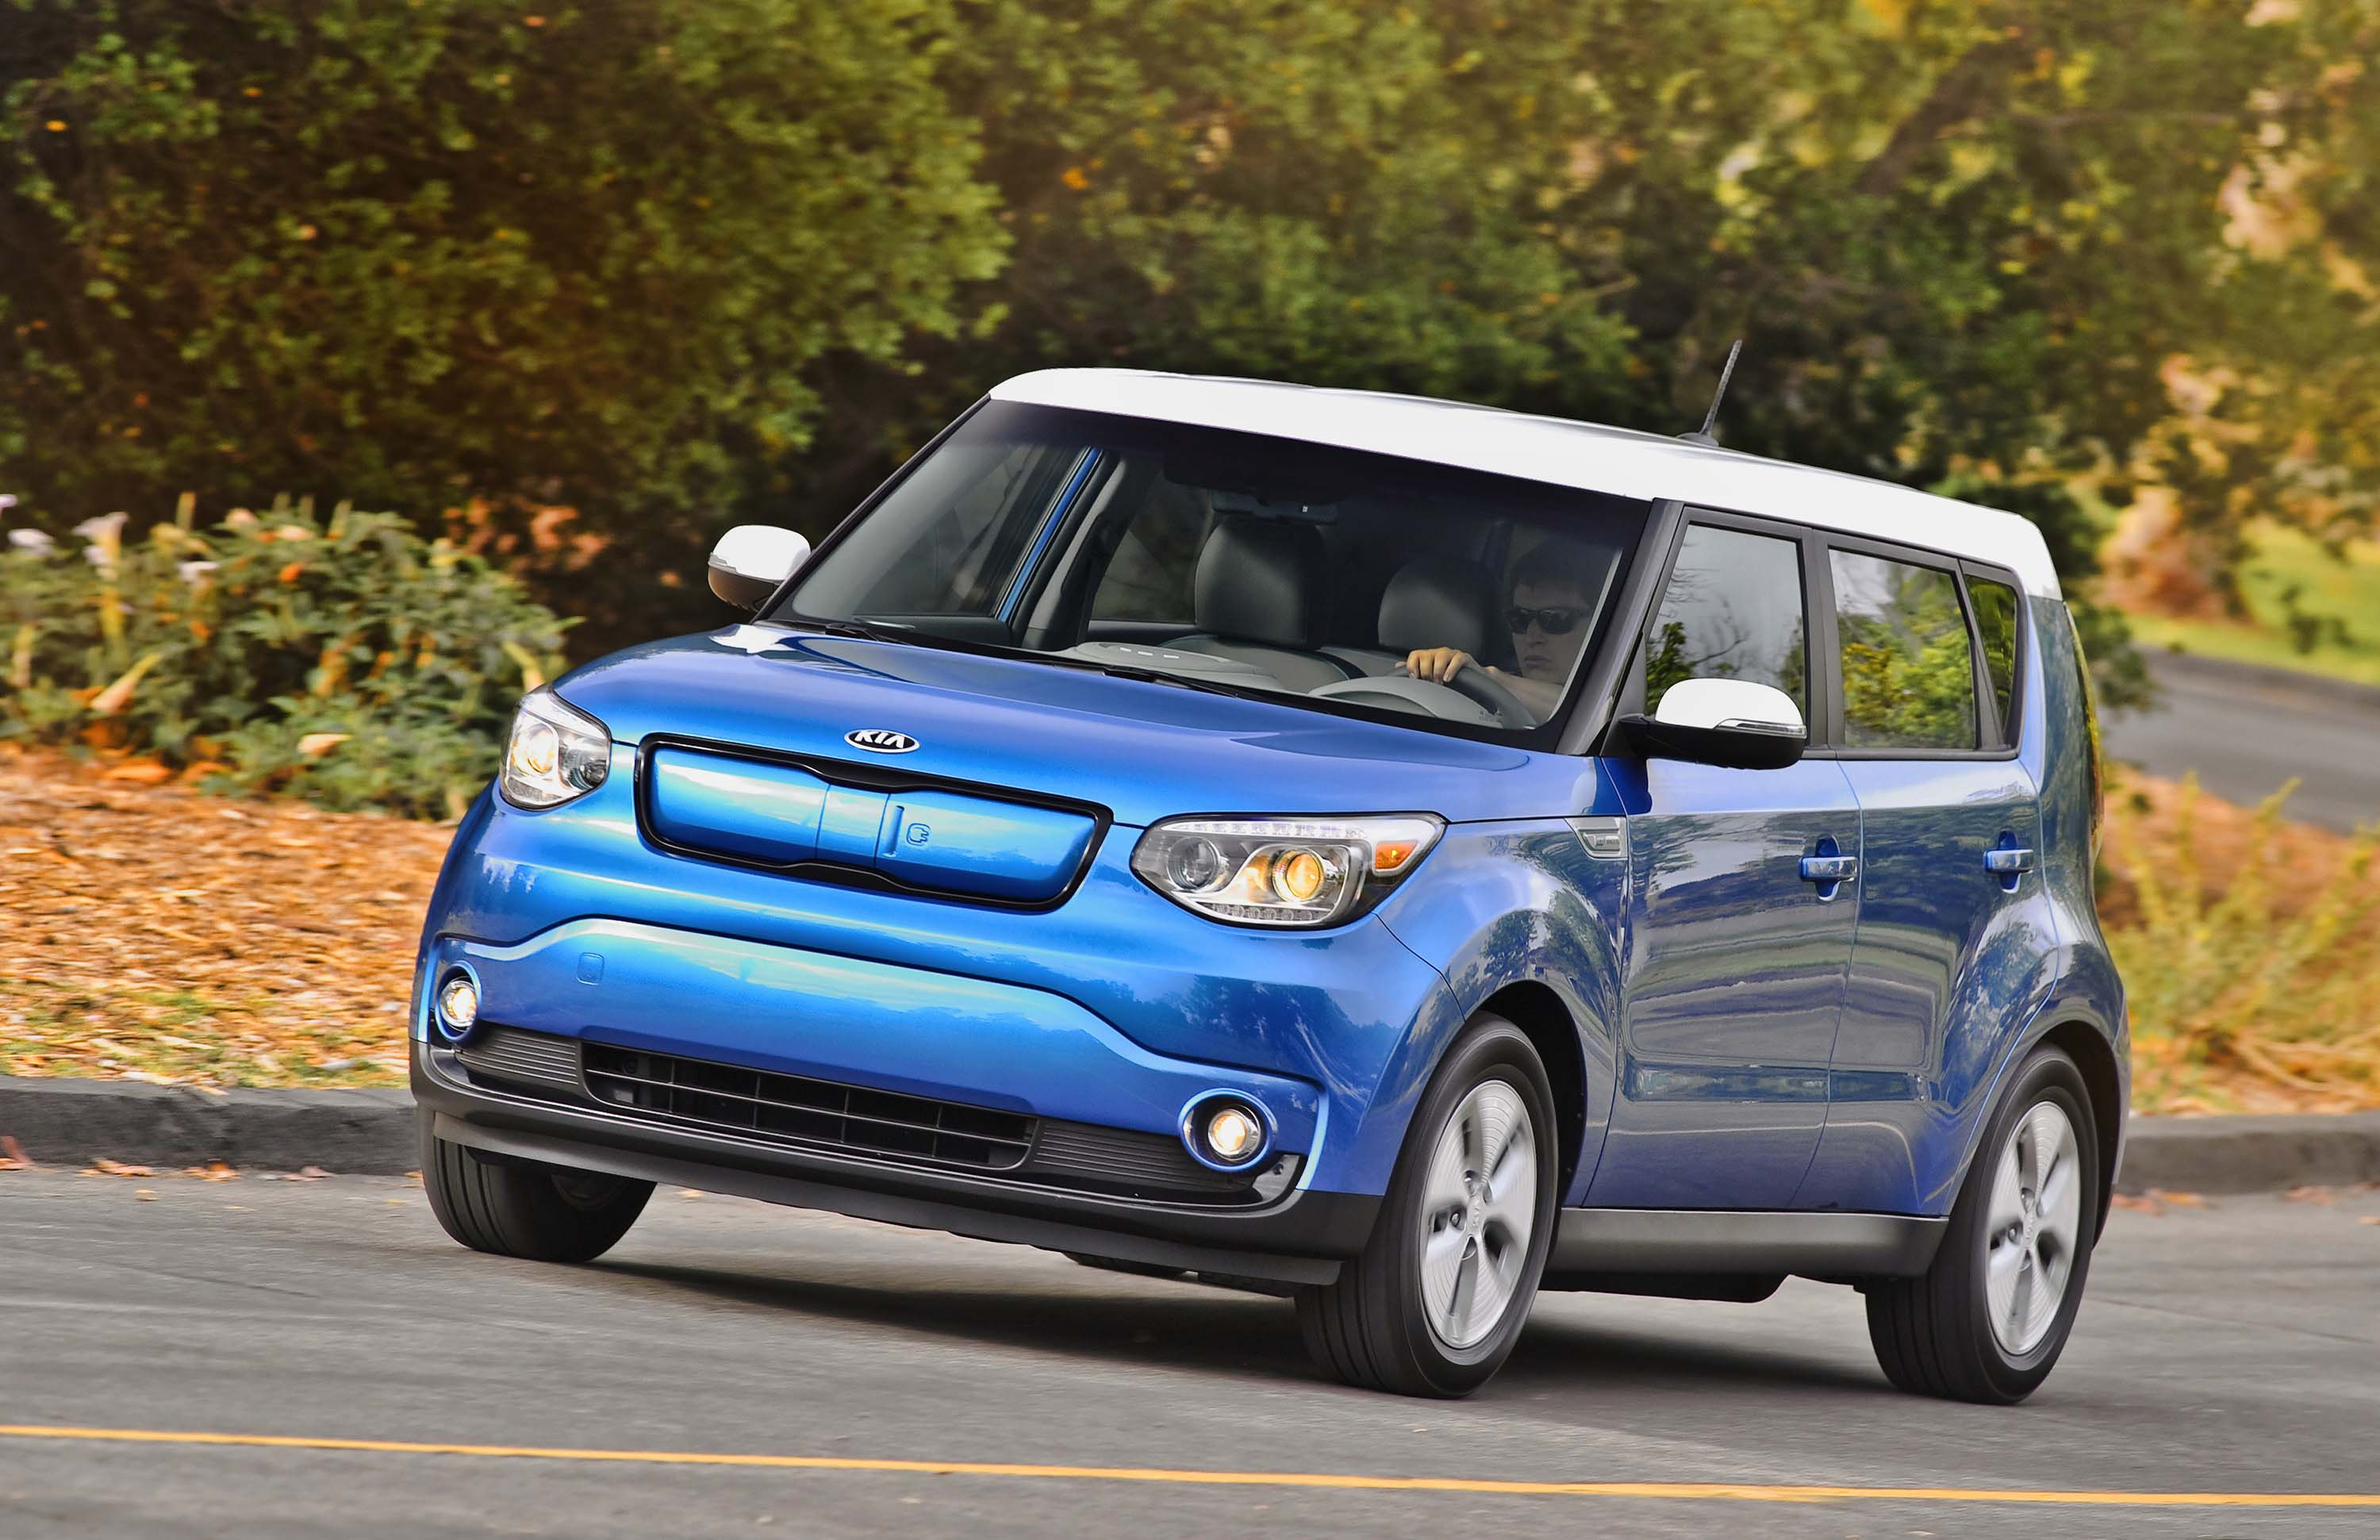 Kia Motors Corp. is recalling 342,381 vehicles in the U.S. for a second time because the first repair may not have solved a steering defect. The recall affects the Soul and Soul EV from the 2014-2016 model years. The 2015 model is shown here.